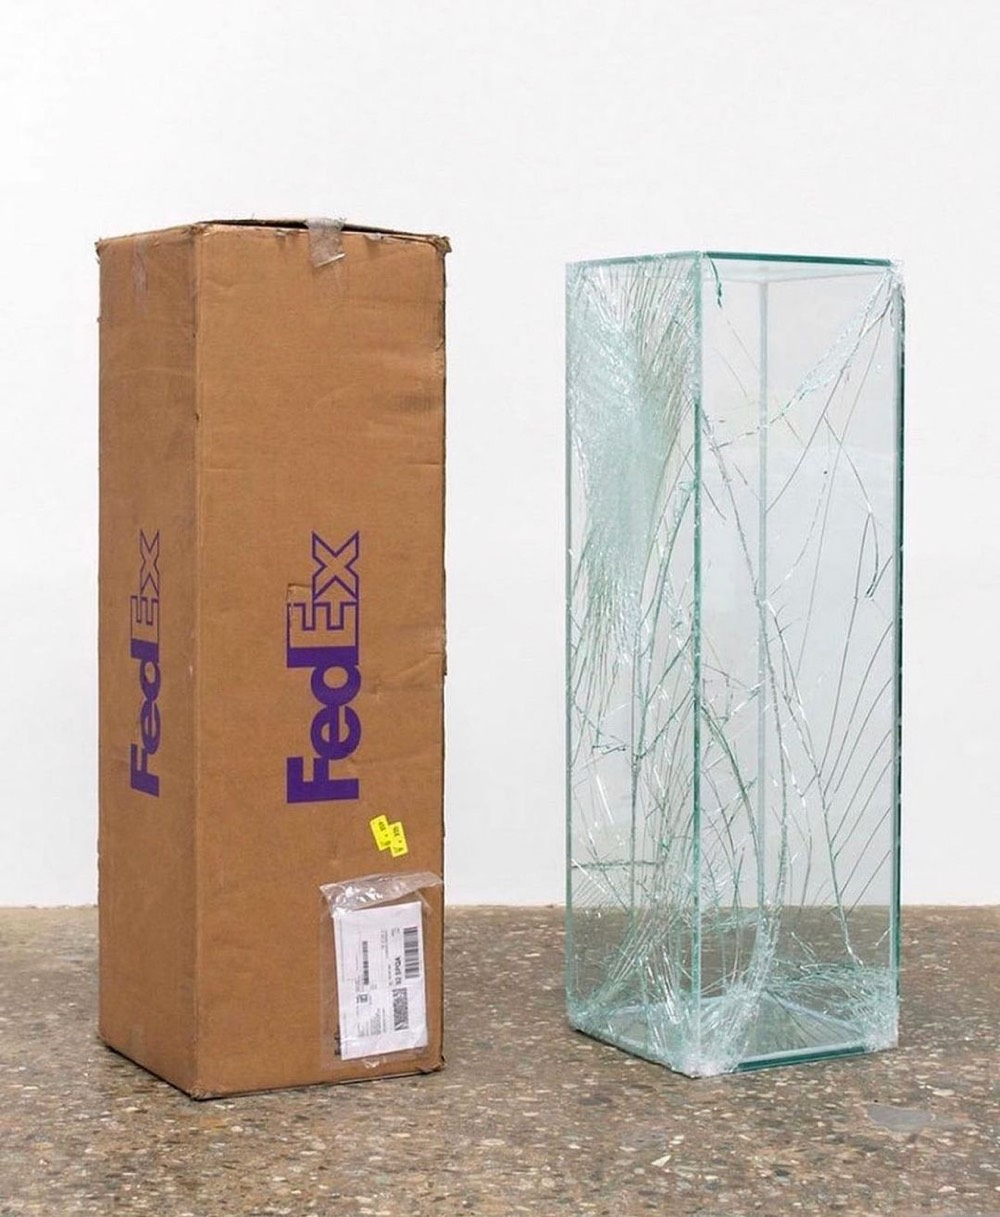 Walead Beshty's FedEx artworks